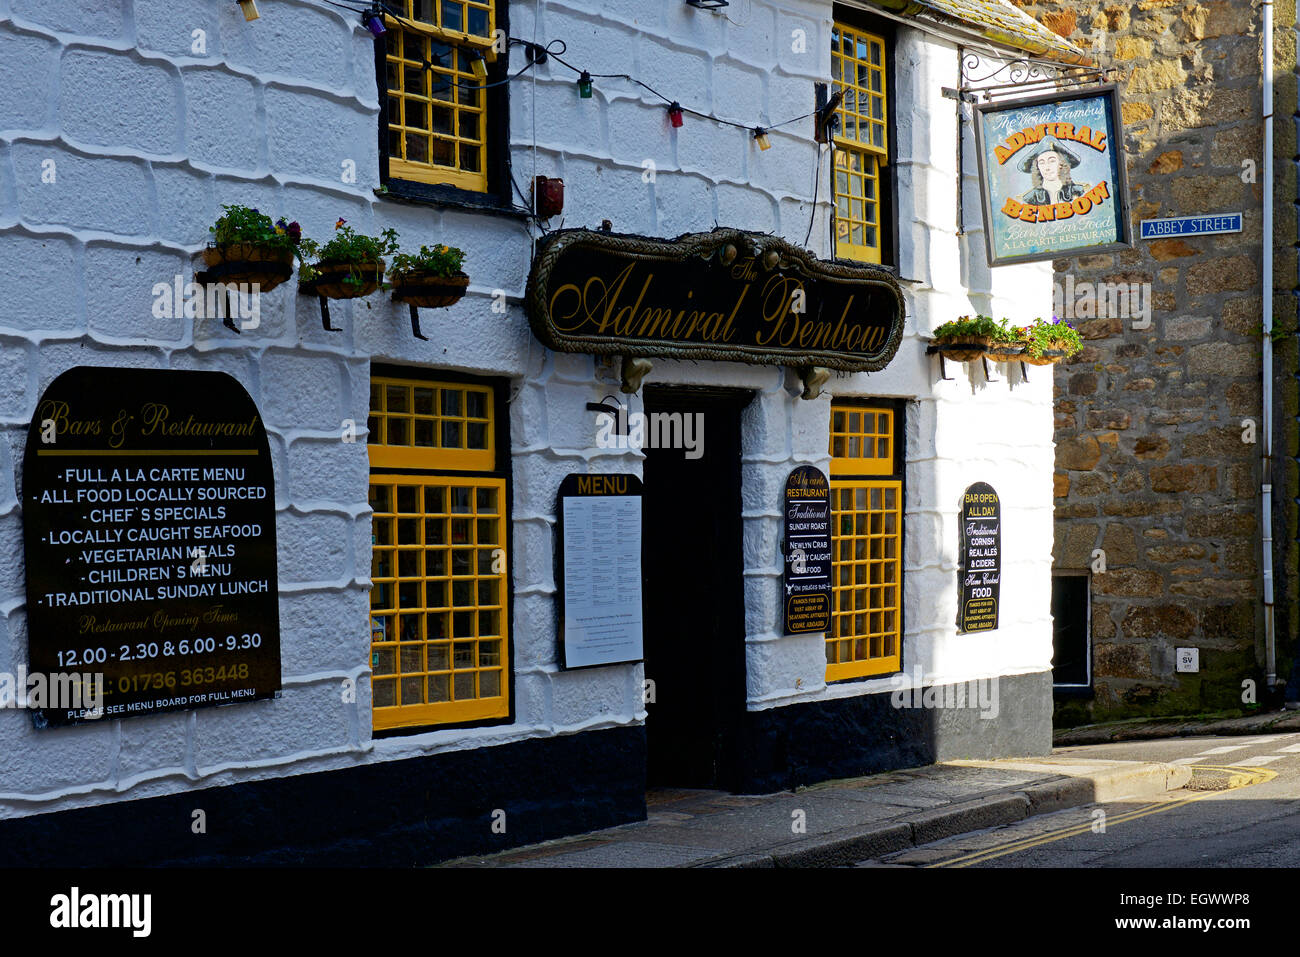 The Admiral Benbow pub in Penzance, Cornwall, England UK - Stock Image